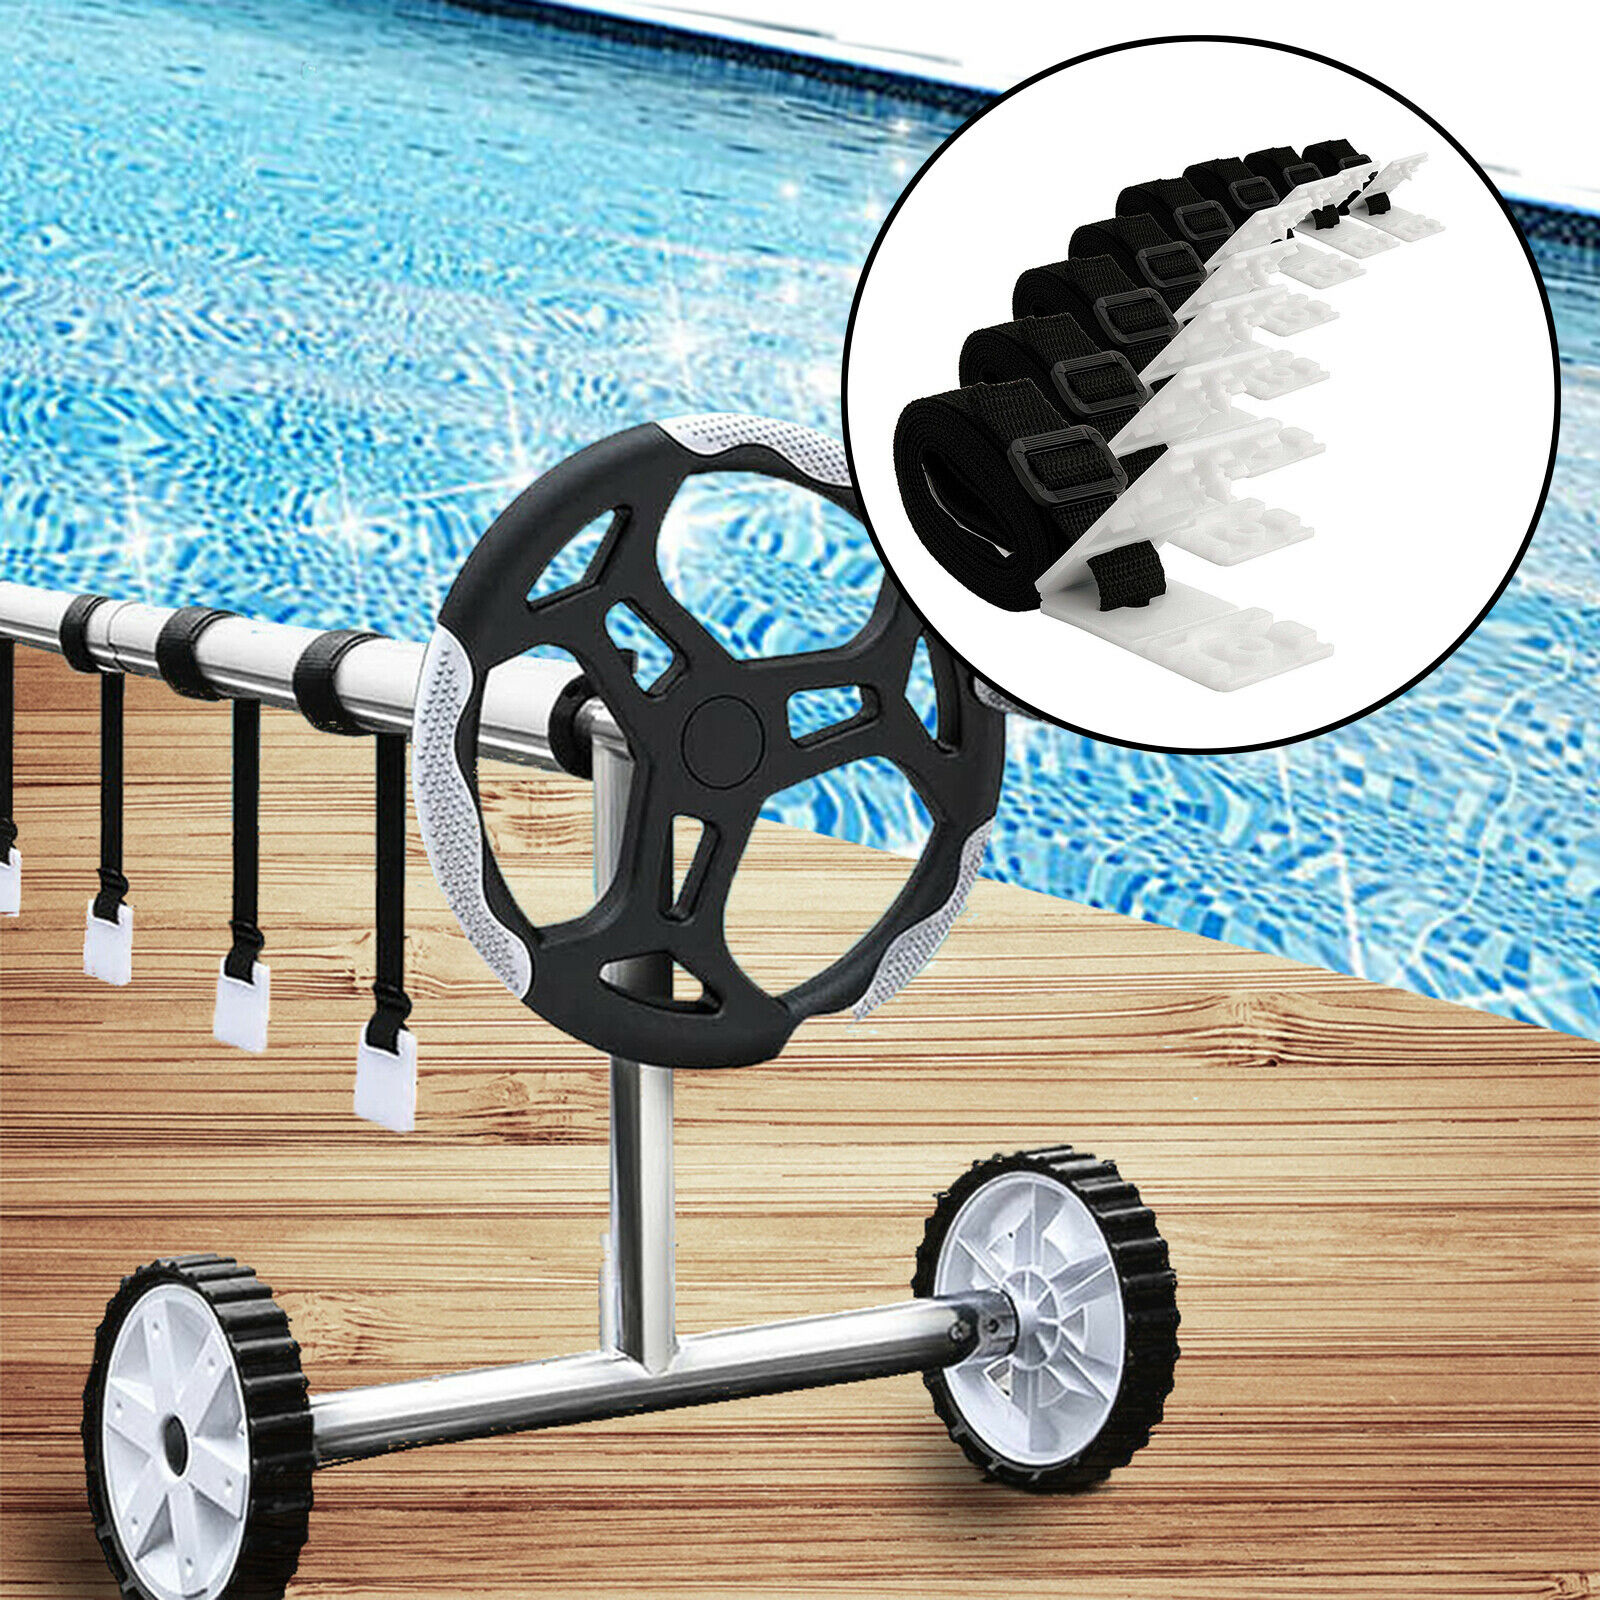 Pool Solar Cover Reel Attachment Kit for In Ground Swimming Pool